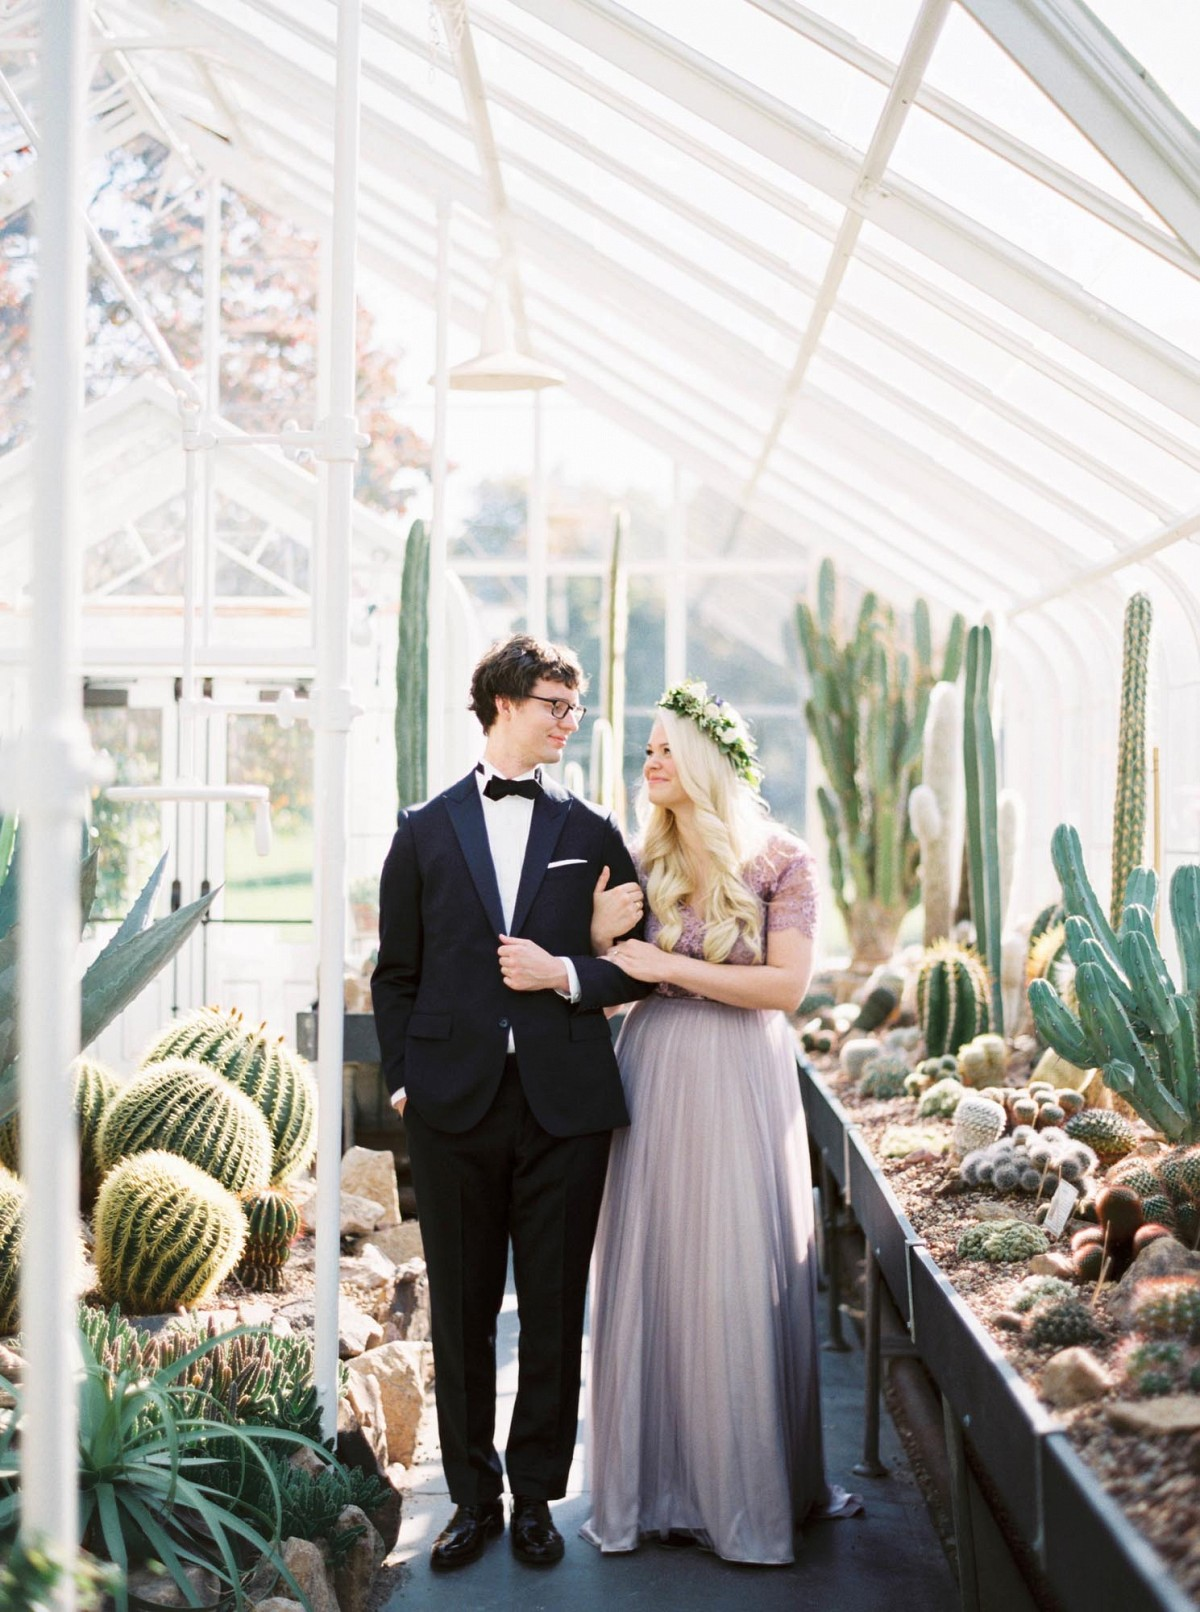 Intimate Conservatory Wedding in a Lilac Gown